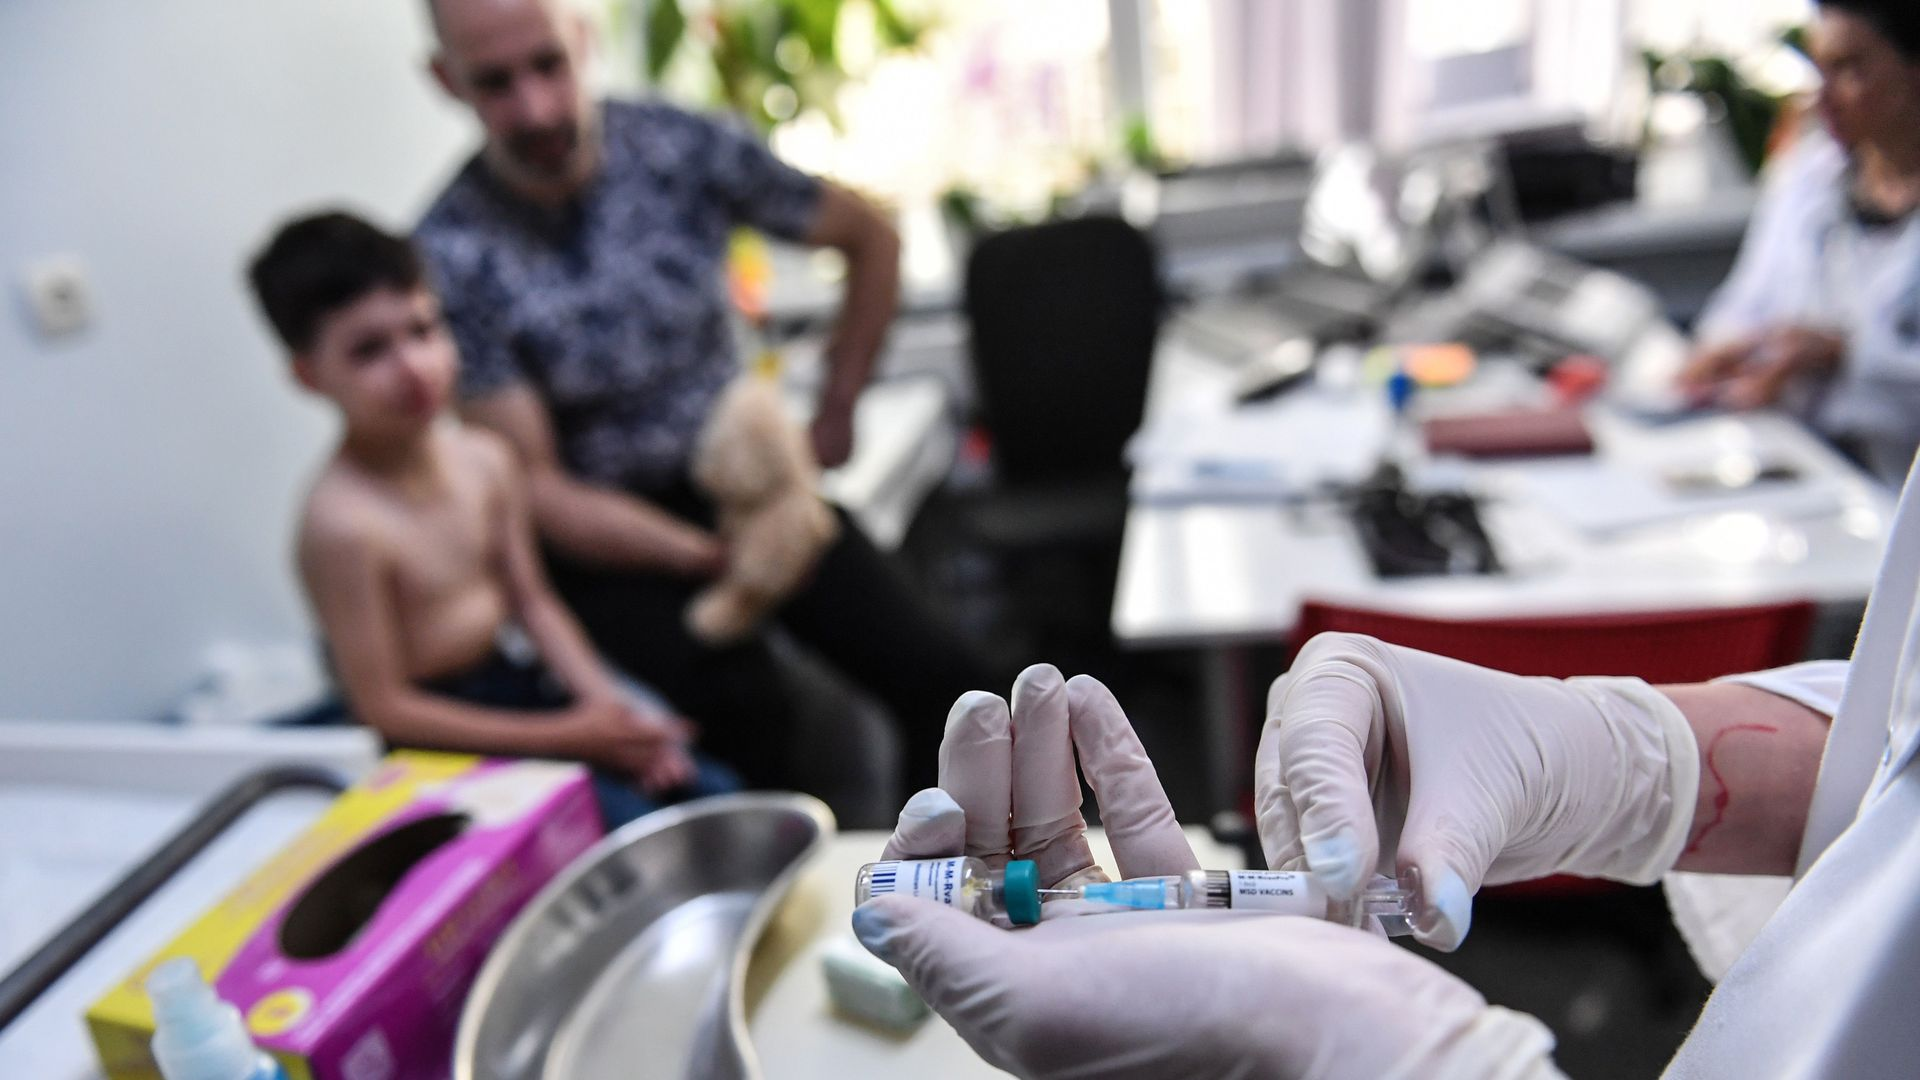 A family physician prepares a measles vaccine during a consultation on April 16, 2018 in the Romanian capital, Bucharest.